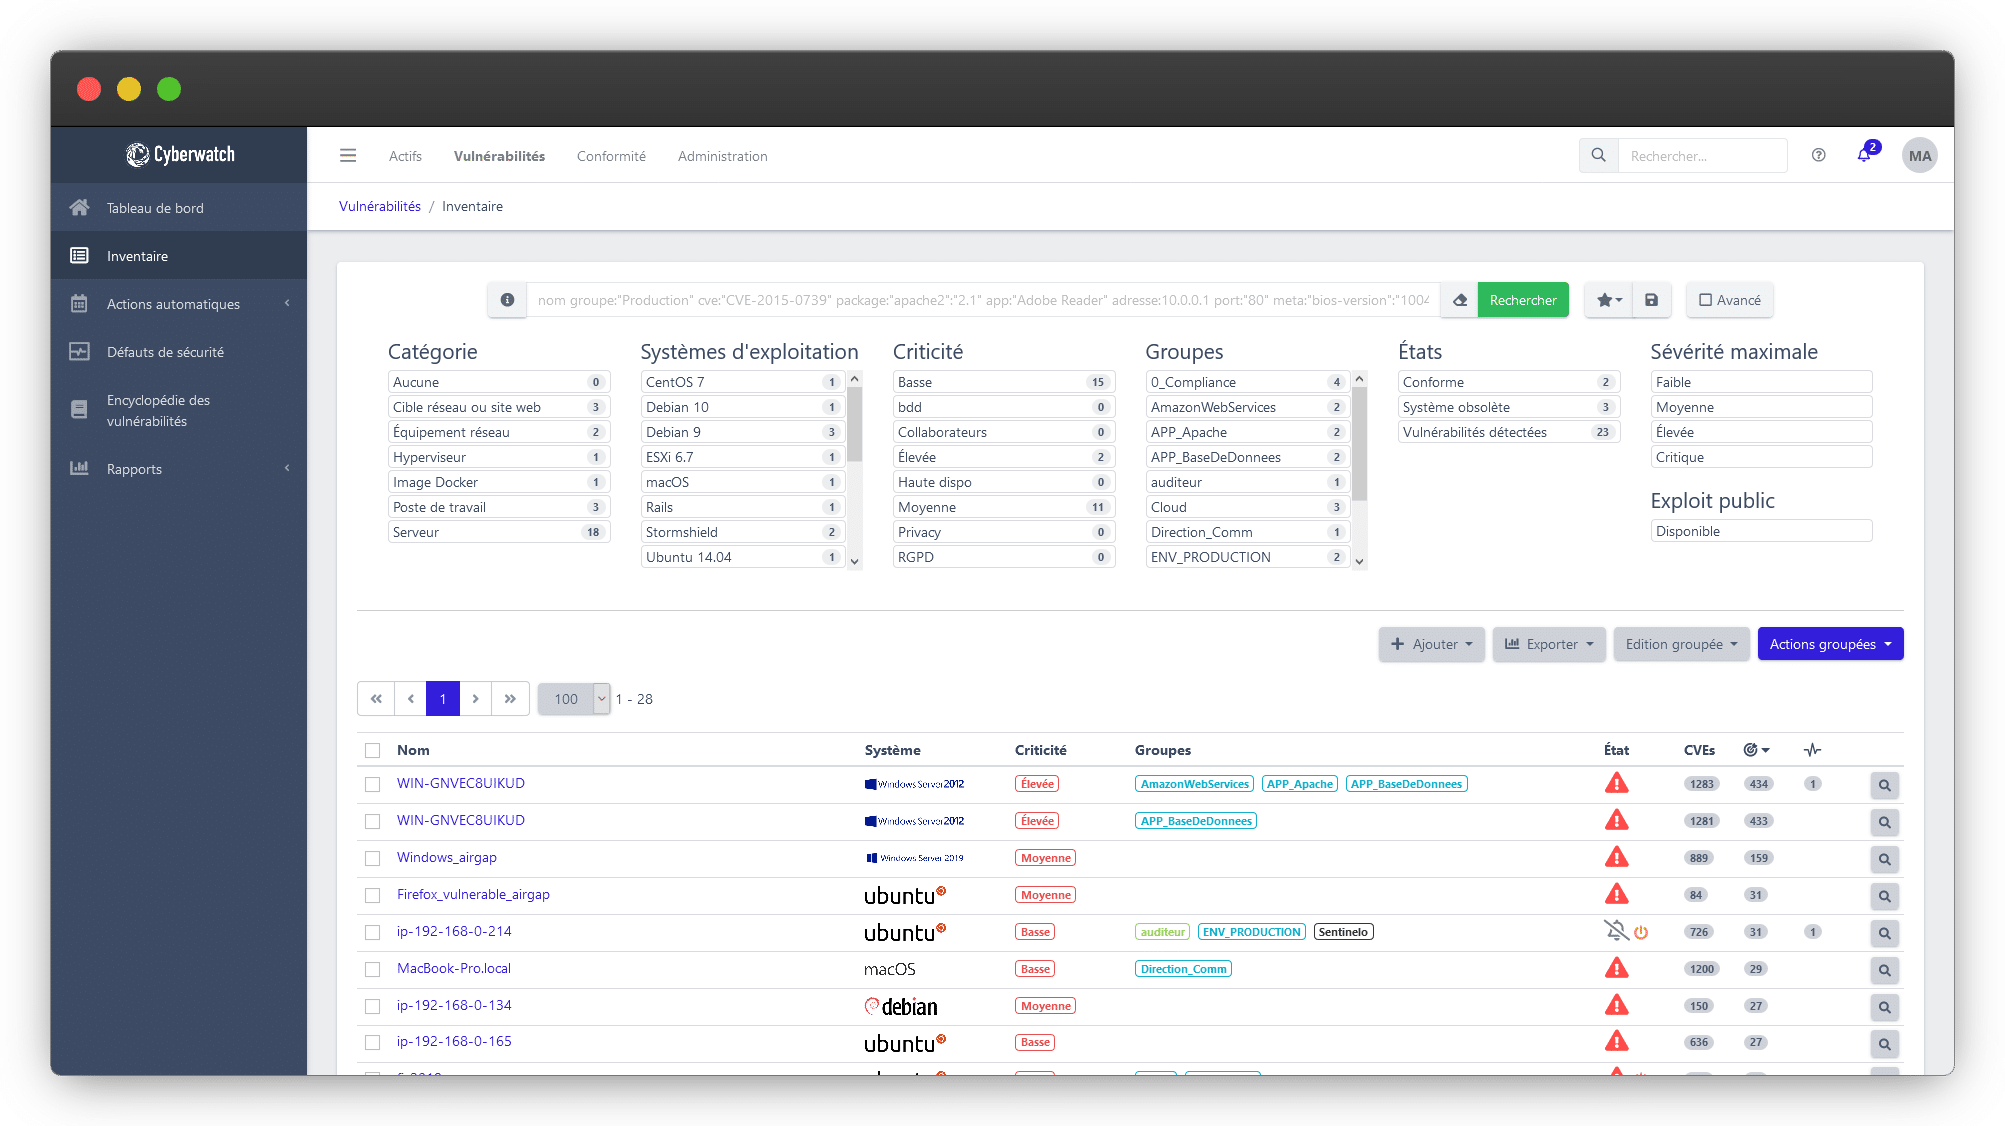 Cyberwatch Vulnerability Manager inventory functionality